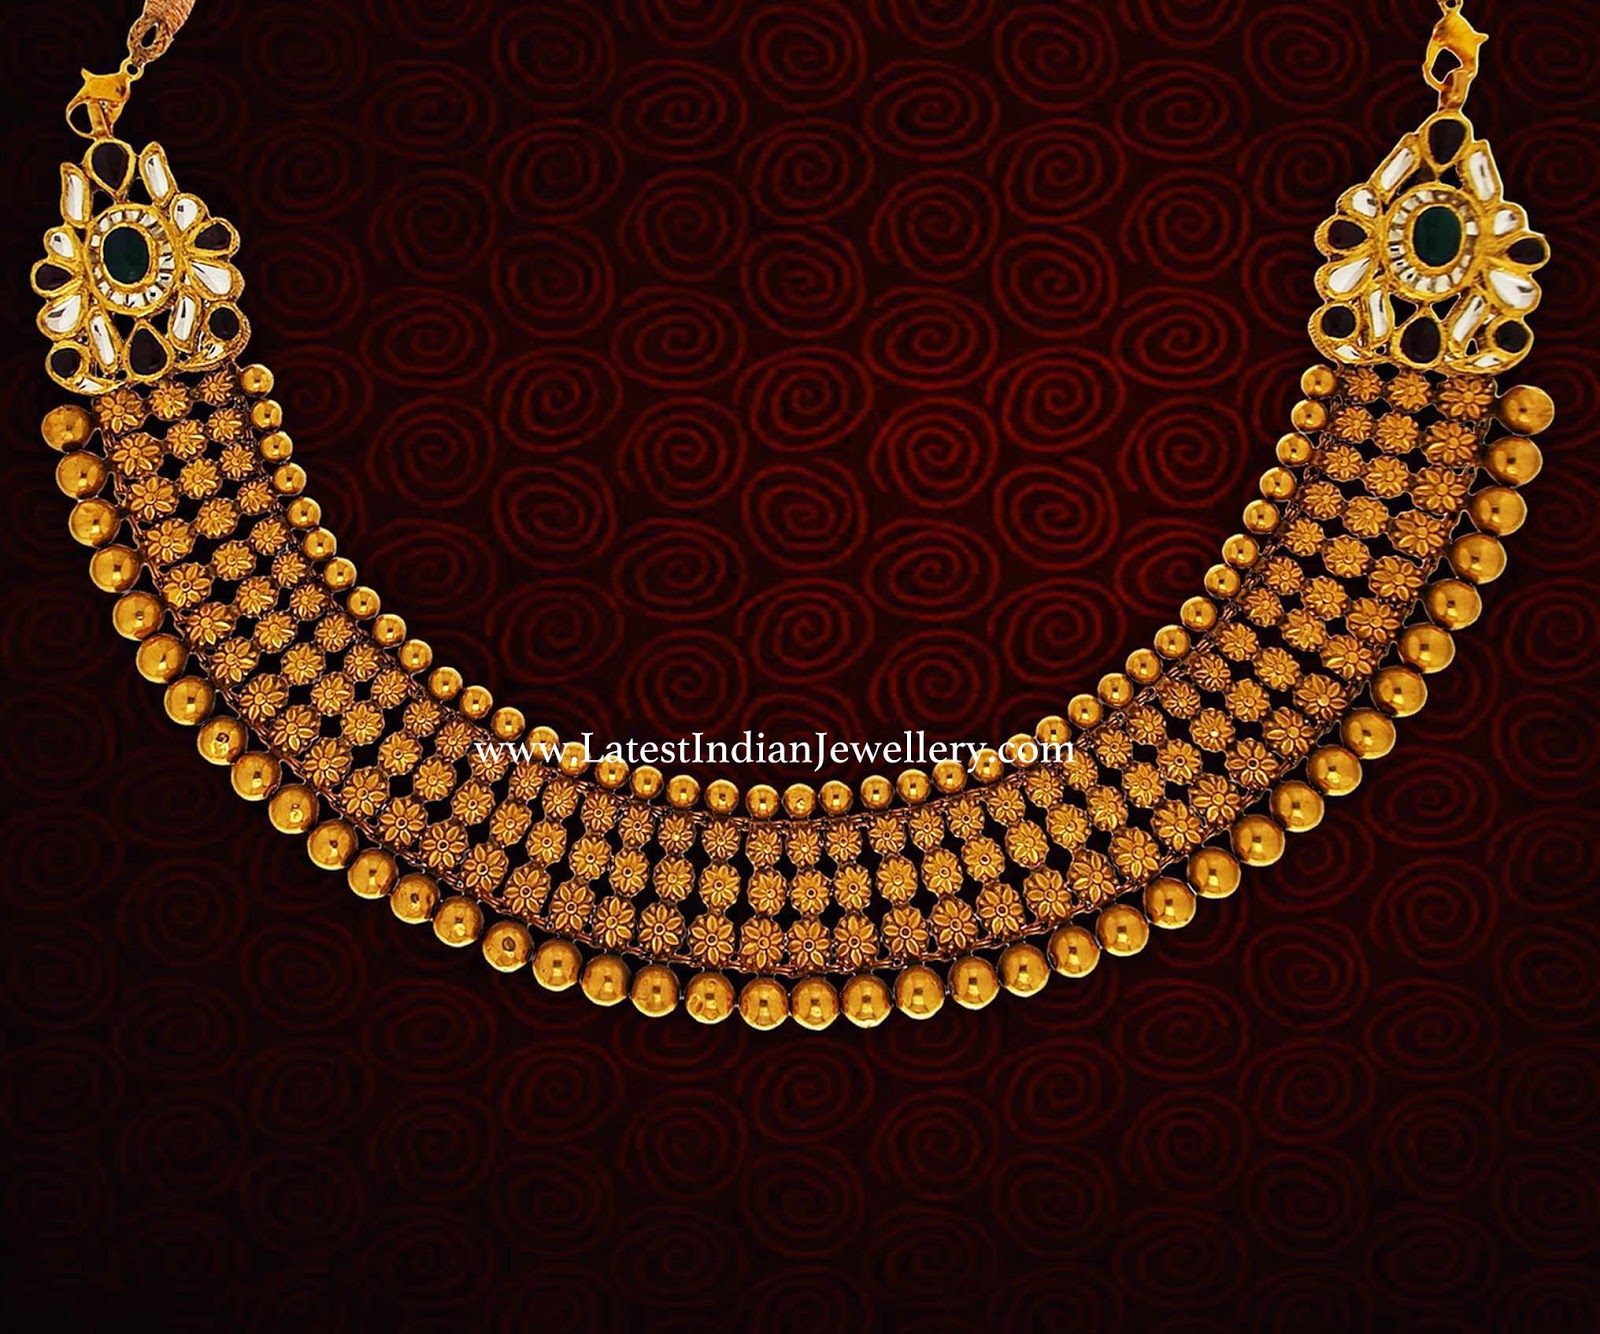 Sophisticated antique gold necklace aloadofball Choice Image